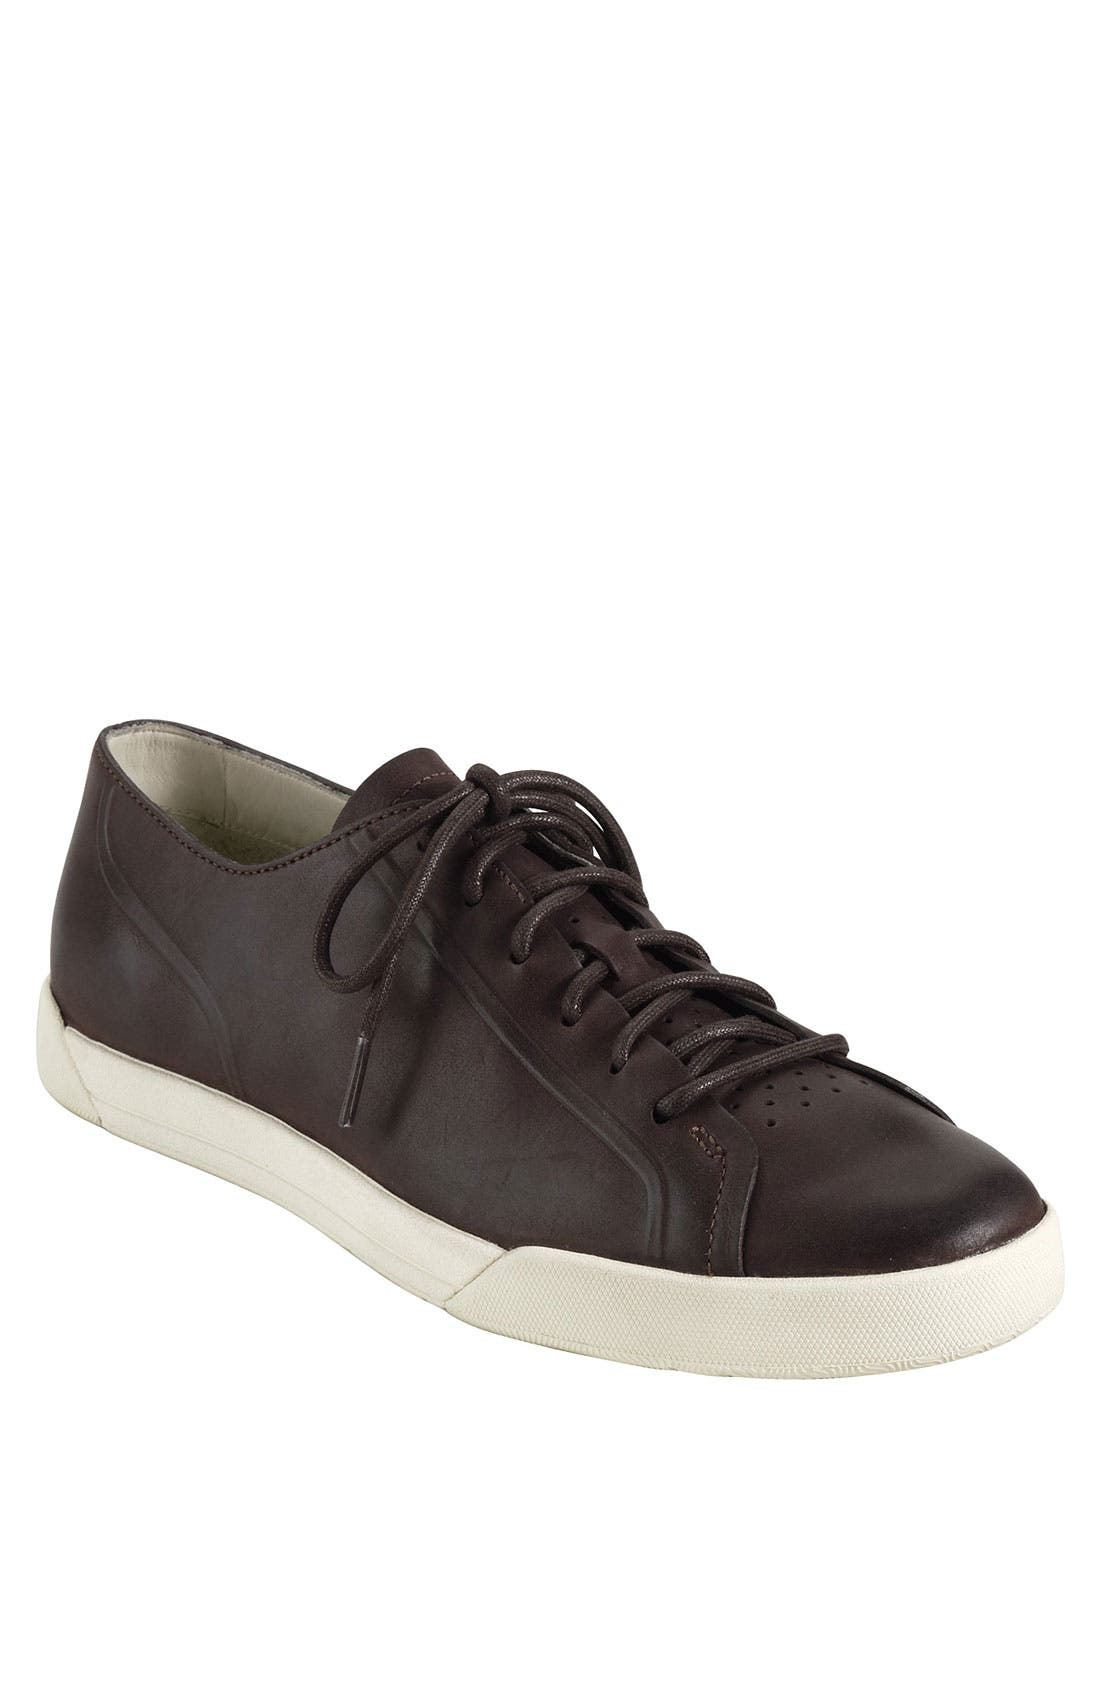 Main Image - Cole Haan 'Air Jasper Low' Sneaker